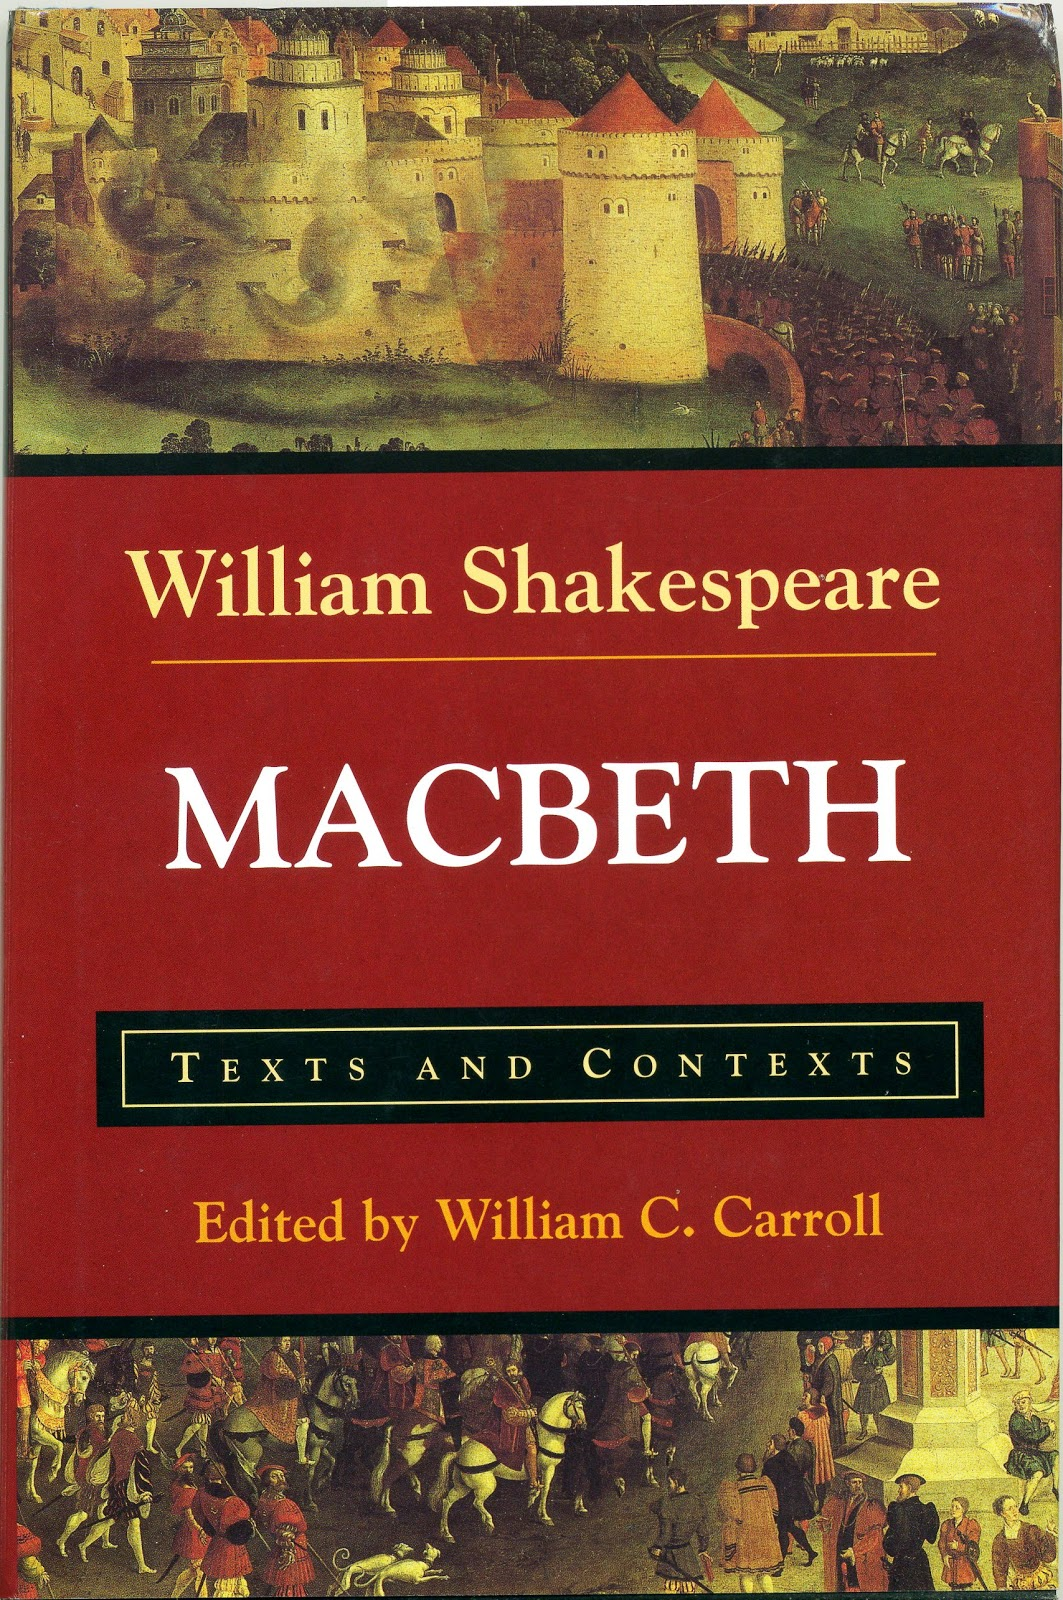 an analysis of the presence of god and the devil in macbeth by william shakespeare Shakespeare got his idea for macbeth from raphael holinshed's chronicles, which tells a different tale using similar characters and references to husband-wife relationships, murder other commonly occurring words that help maintain the mood of the play are terrible, horrible, black, devil, and evil.